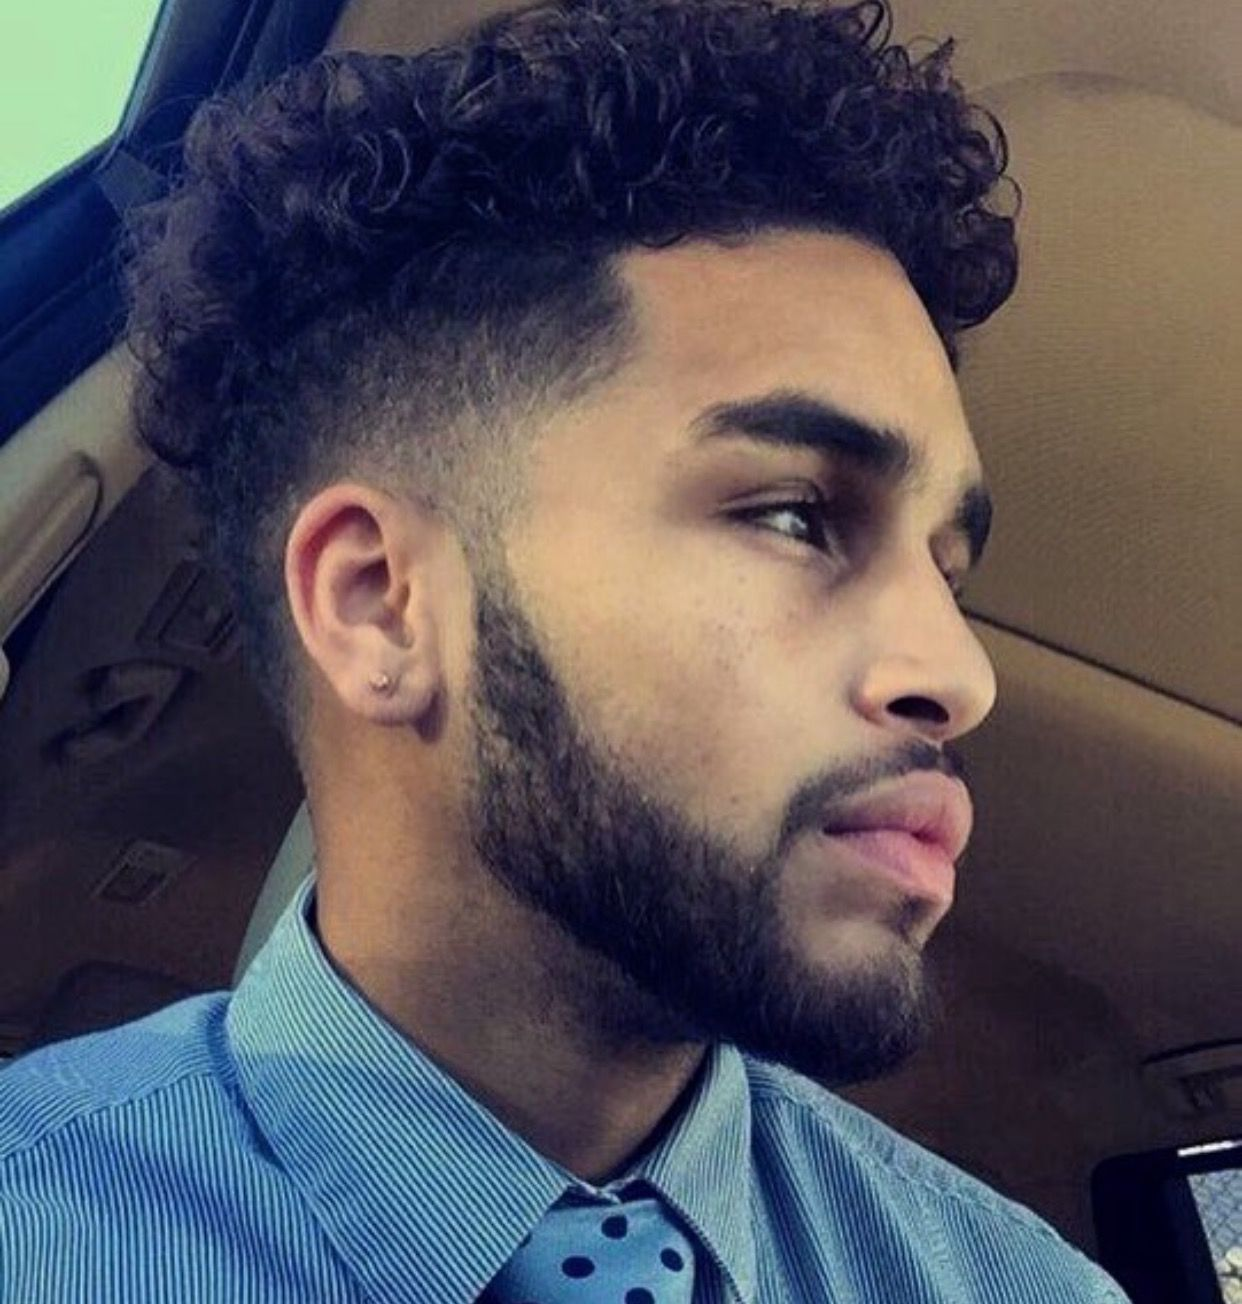 Explore Black Men Haircuts Hairstyles And More